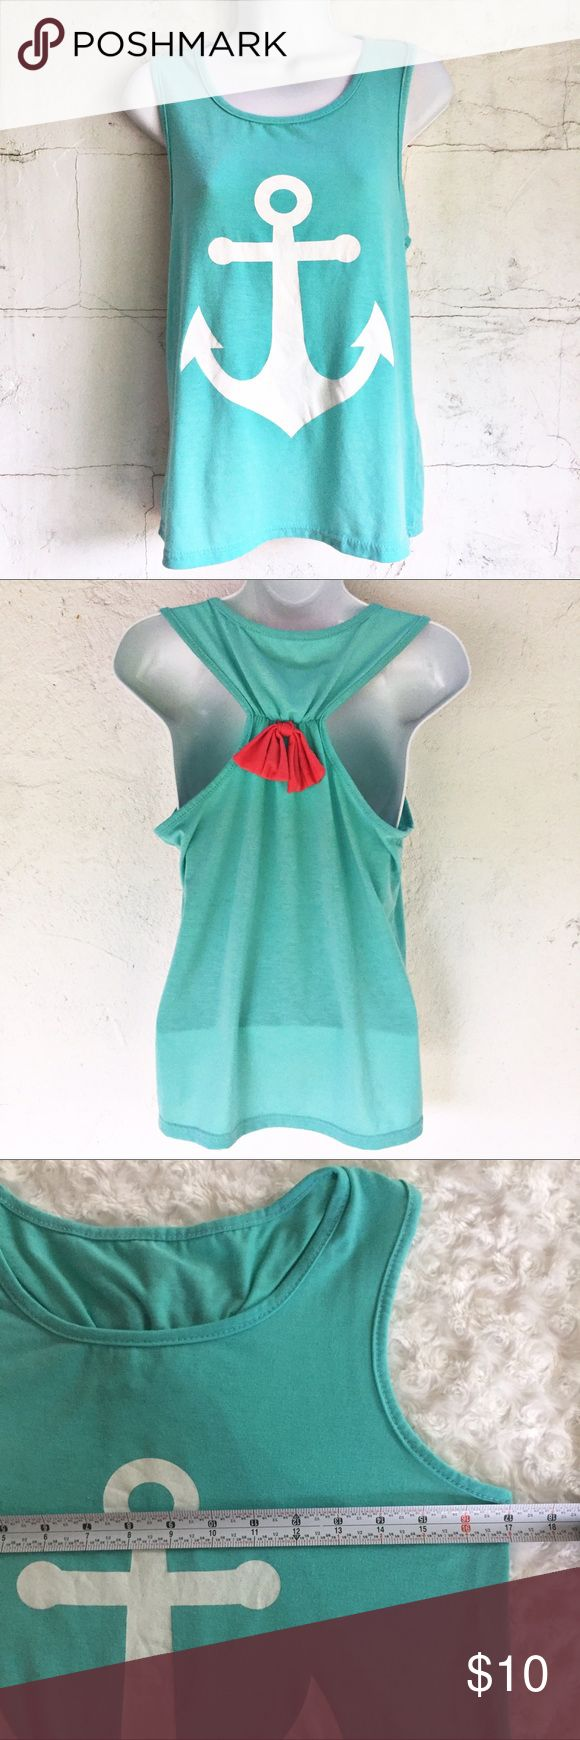 """Anchor Tank Top, Racerback w/Pink Bow Nautical Green Anchor Tank Top, Racerback w/Pink Bow  No brand or size tags, so please see measurements. Would best fit a size medium in women's. Super comfortable. Very soft. Stretchy material. Perfect for a day at the beach, lake or river! Super cute with white jeans or shorts!   Flat lay measurements  Bust approx 17"""" Waist approx 16.5"""" Length approx 23"""" Tops"""